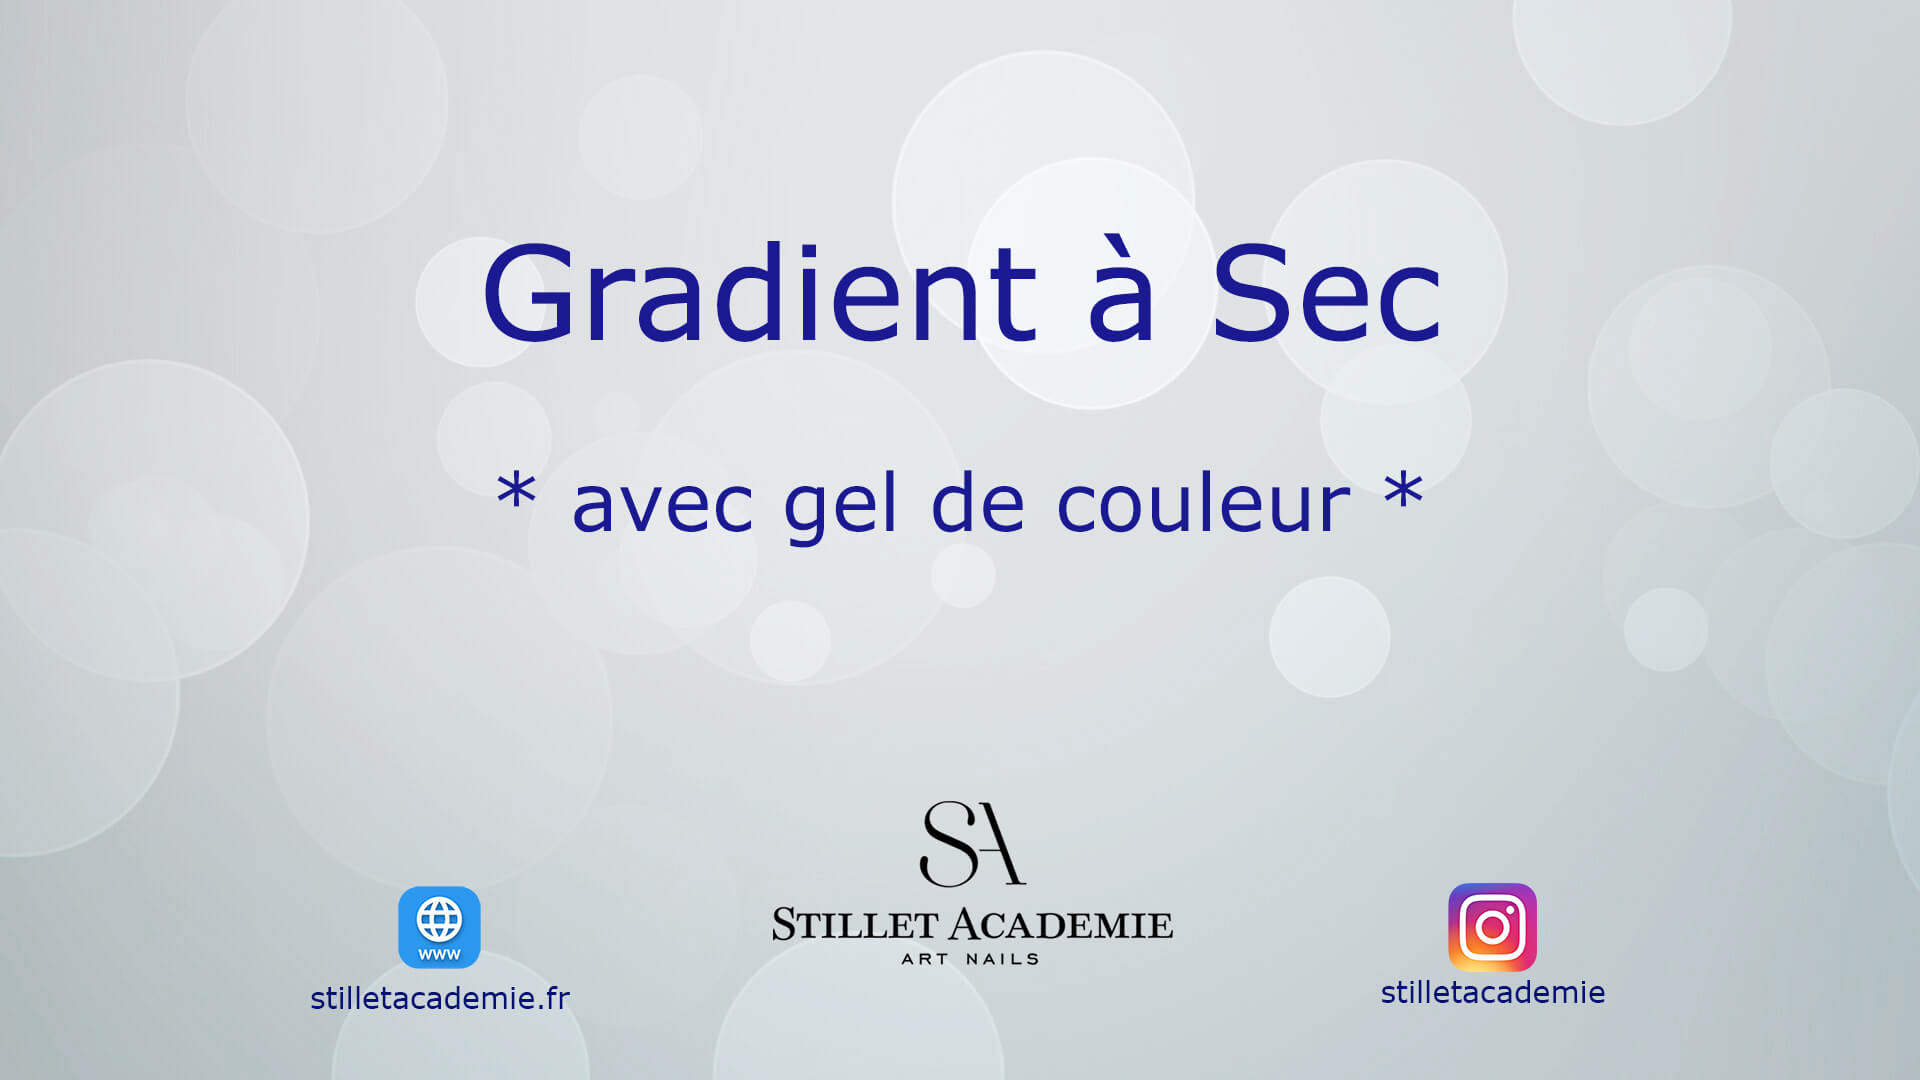 Cours-video ongles Stillet Academie Gradient Sec